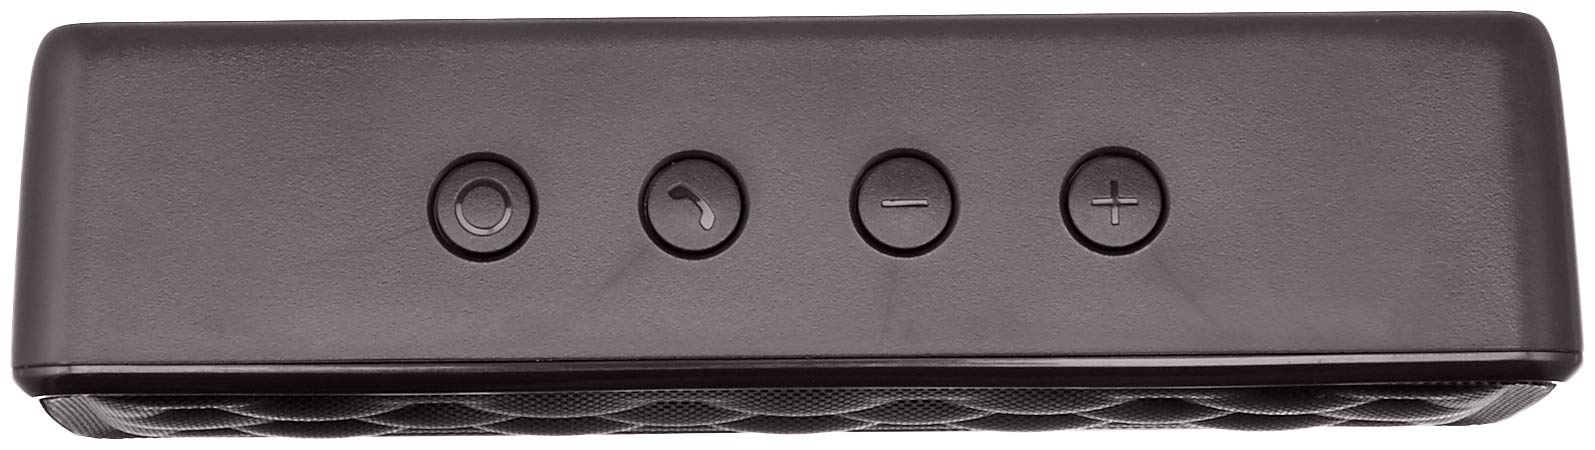 AmazonBasics Portable Wireless, 2.1 Bluetooth Speaker, Black